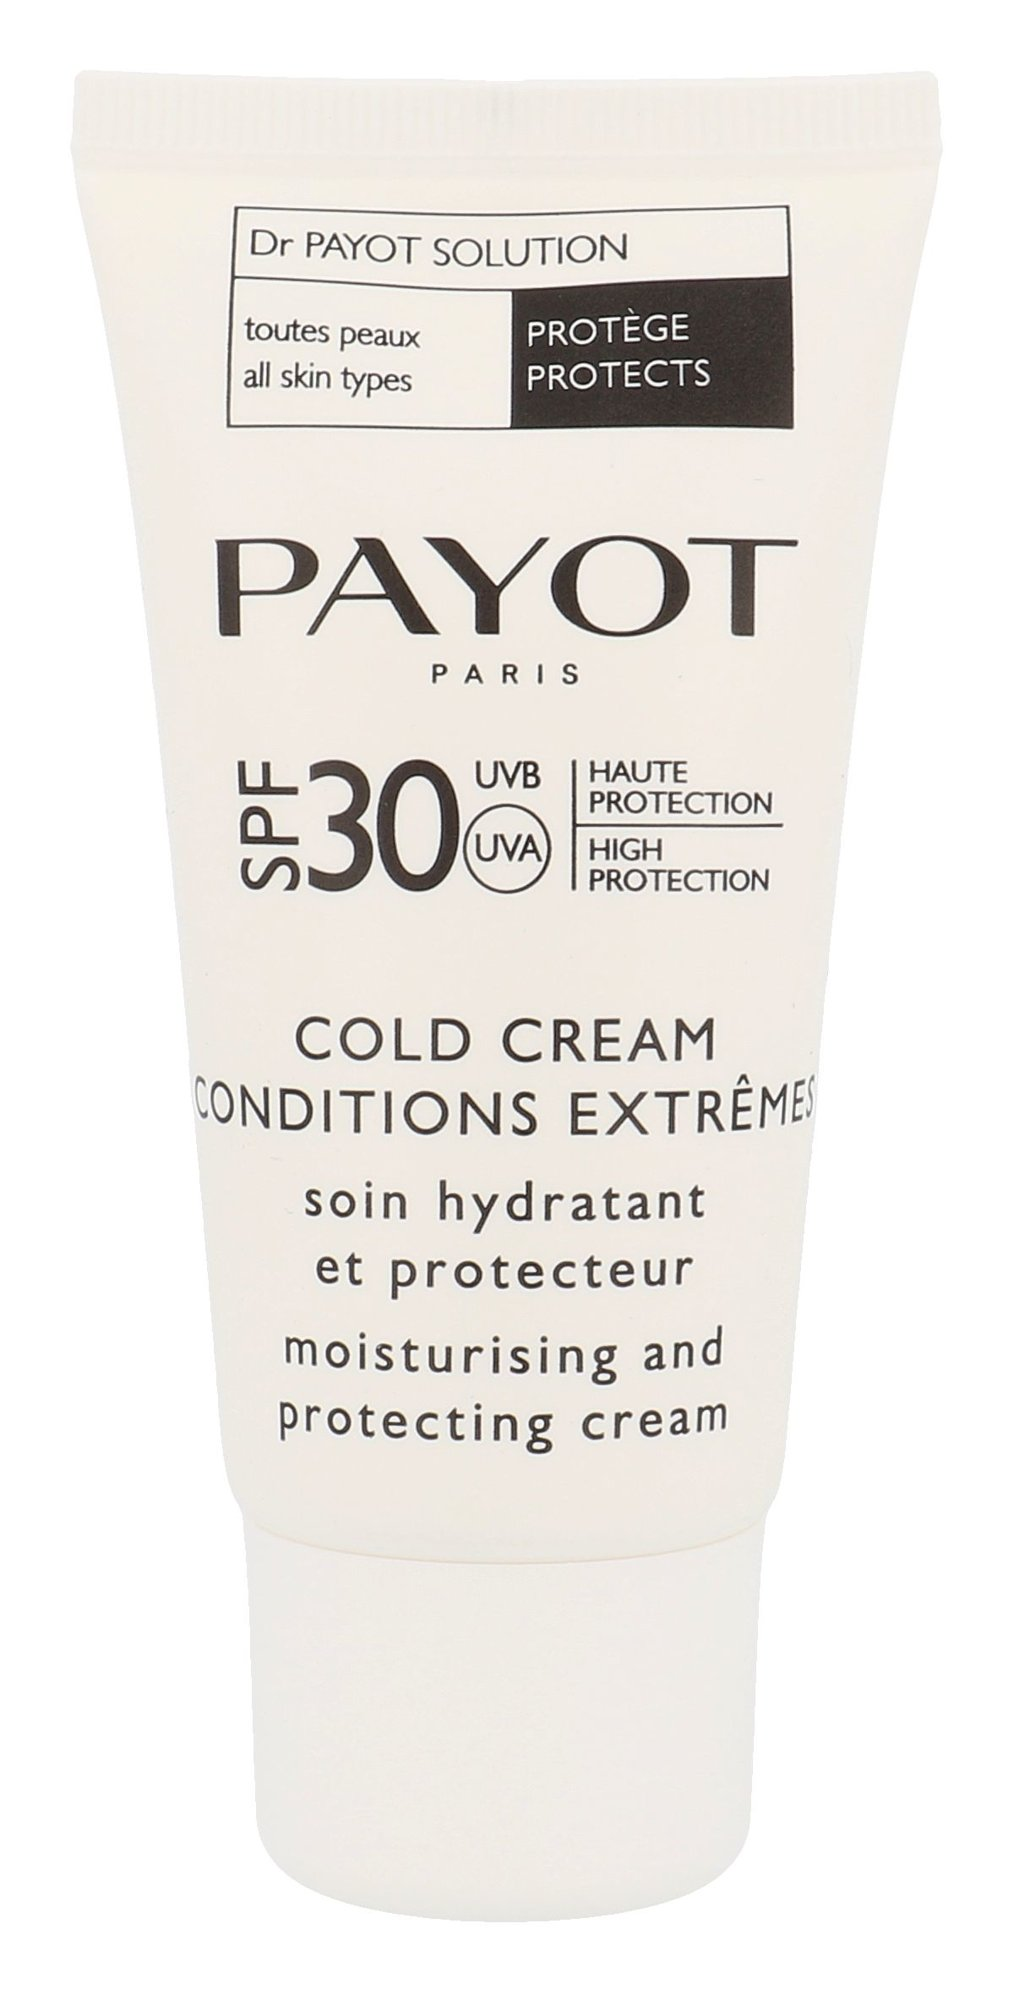 PAYOT Dr Payot Solution Cosmetic 50ml  Cold Cream Conditions Extremes SPF30